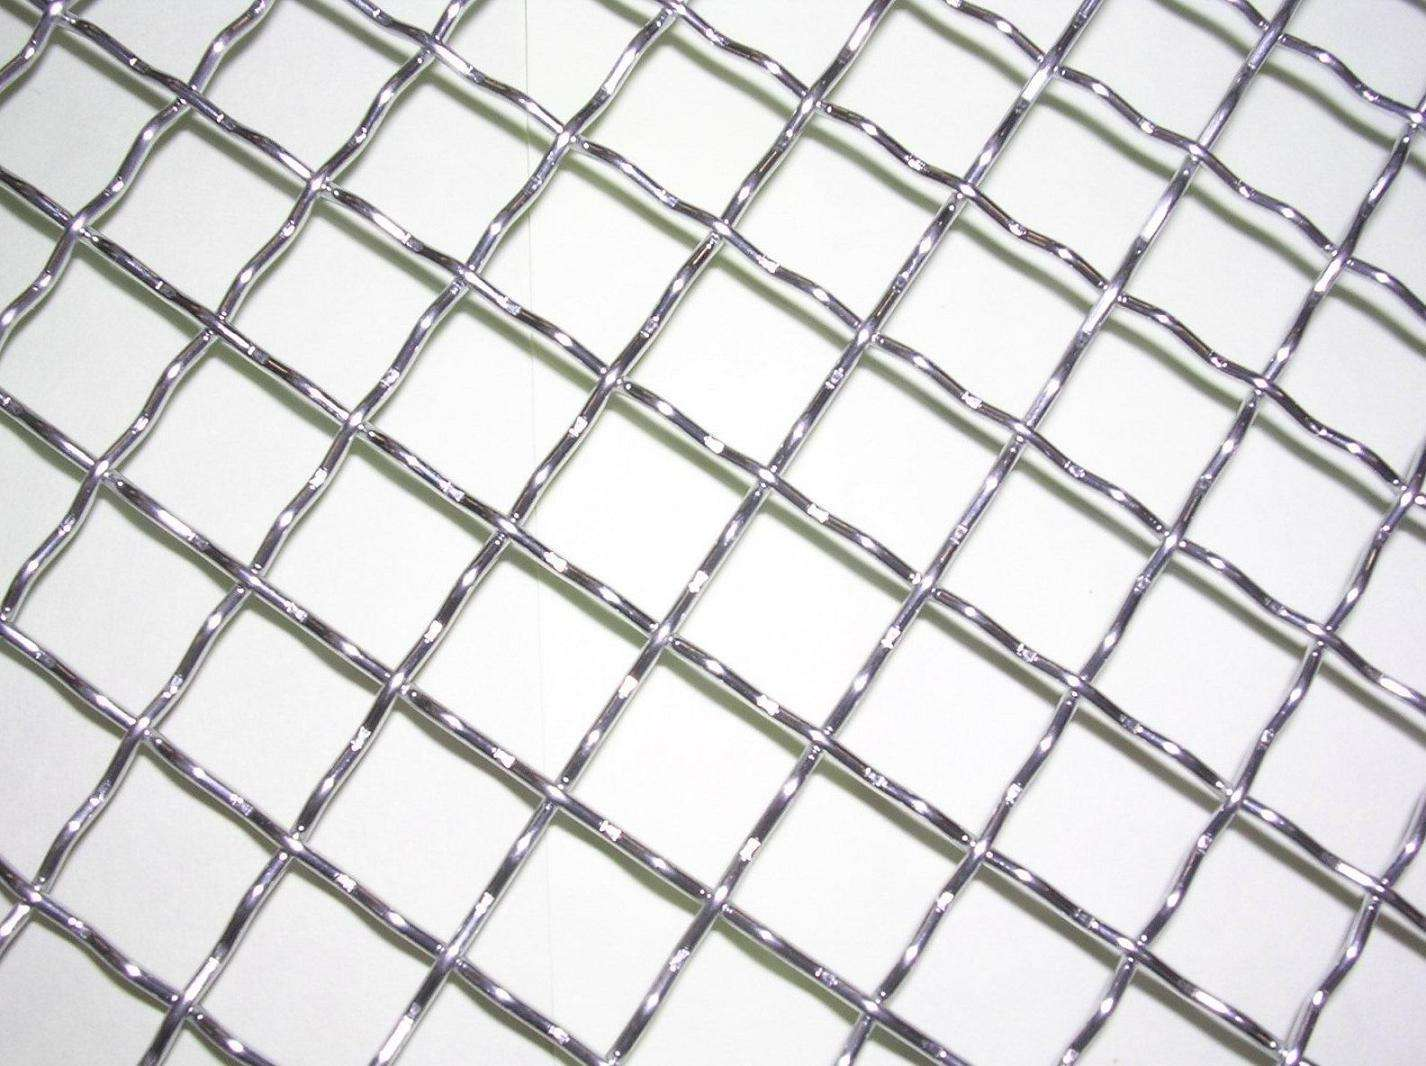 Fiberglass Mesh Clothing - Welded Mesh and Chain Link Fence Manufacturer